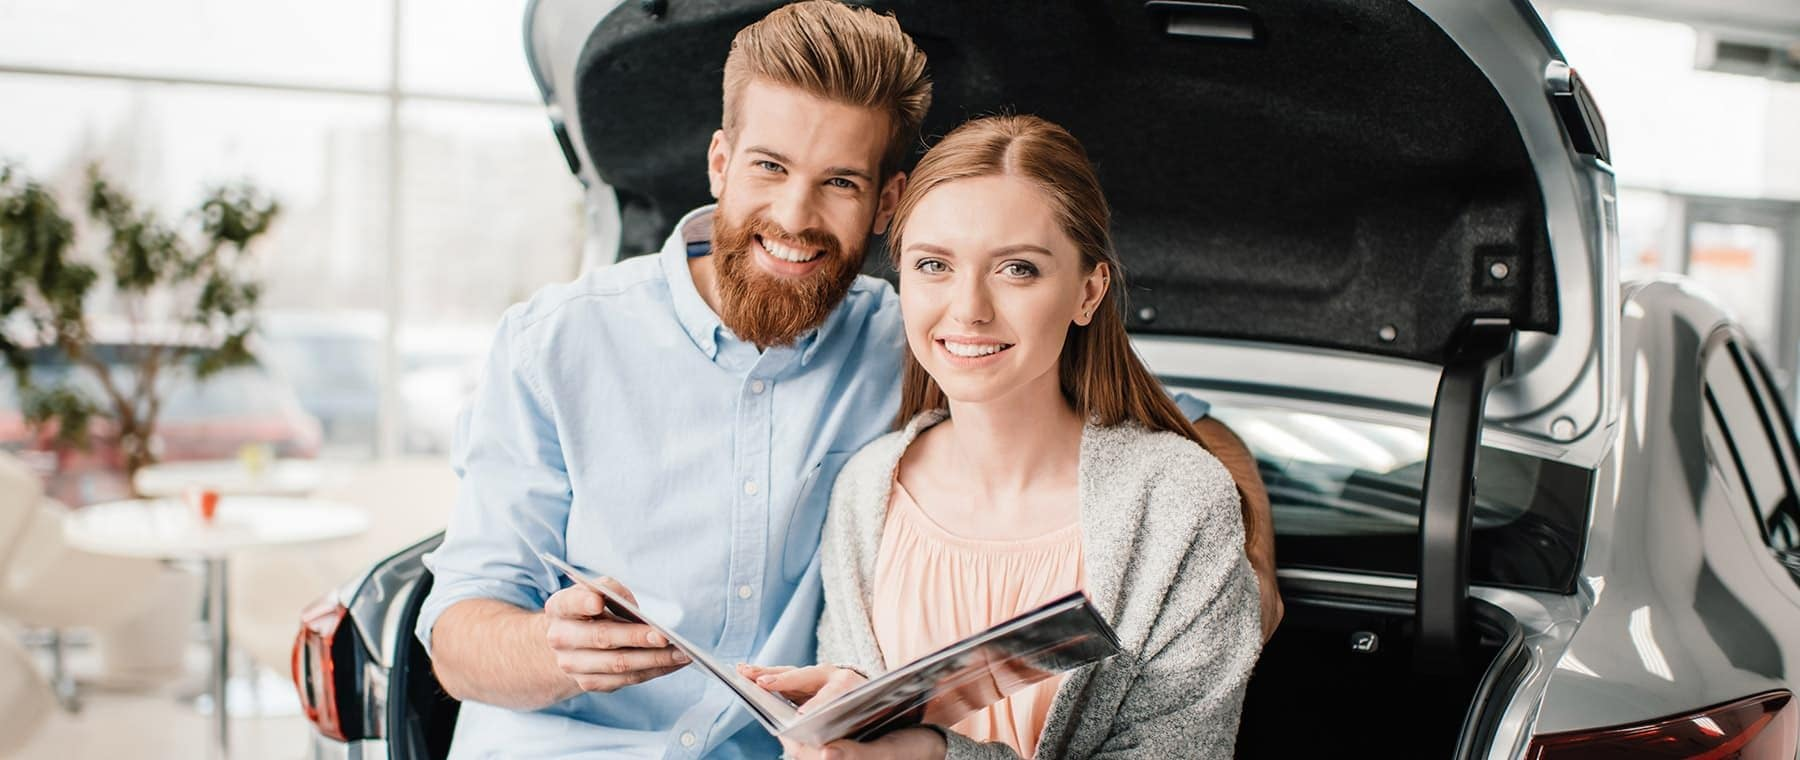 Man and woman smiling while reading vehicle booklet